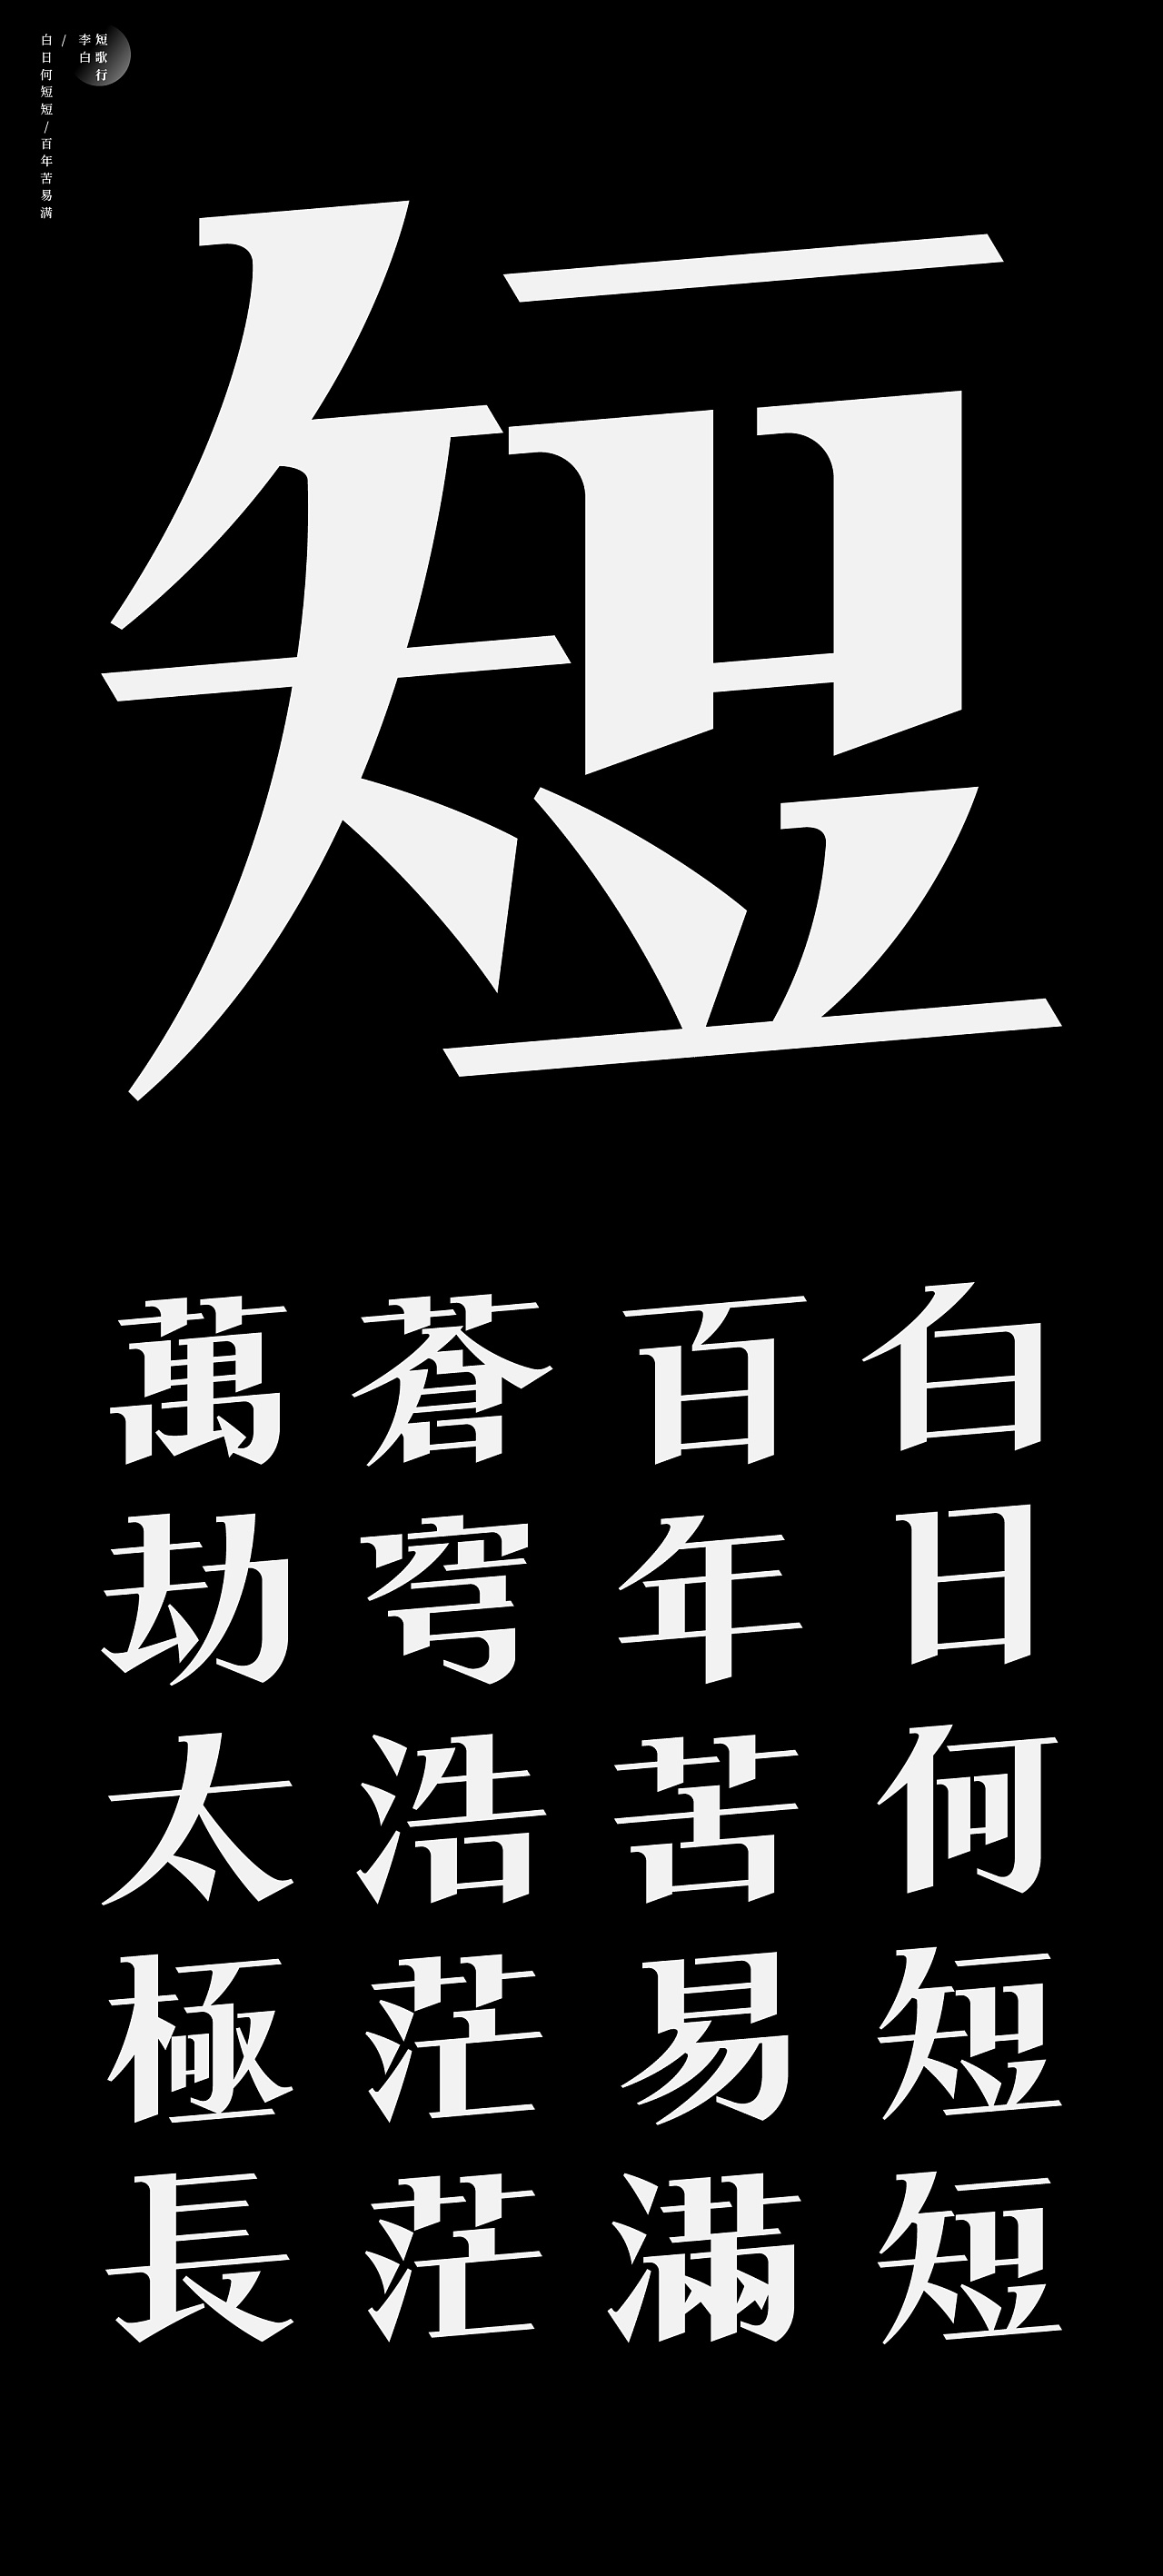 Chinese Creative Font Design-Font Design of Ancient Poems-Short Songs